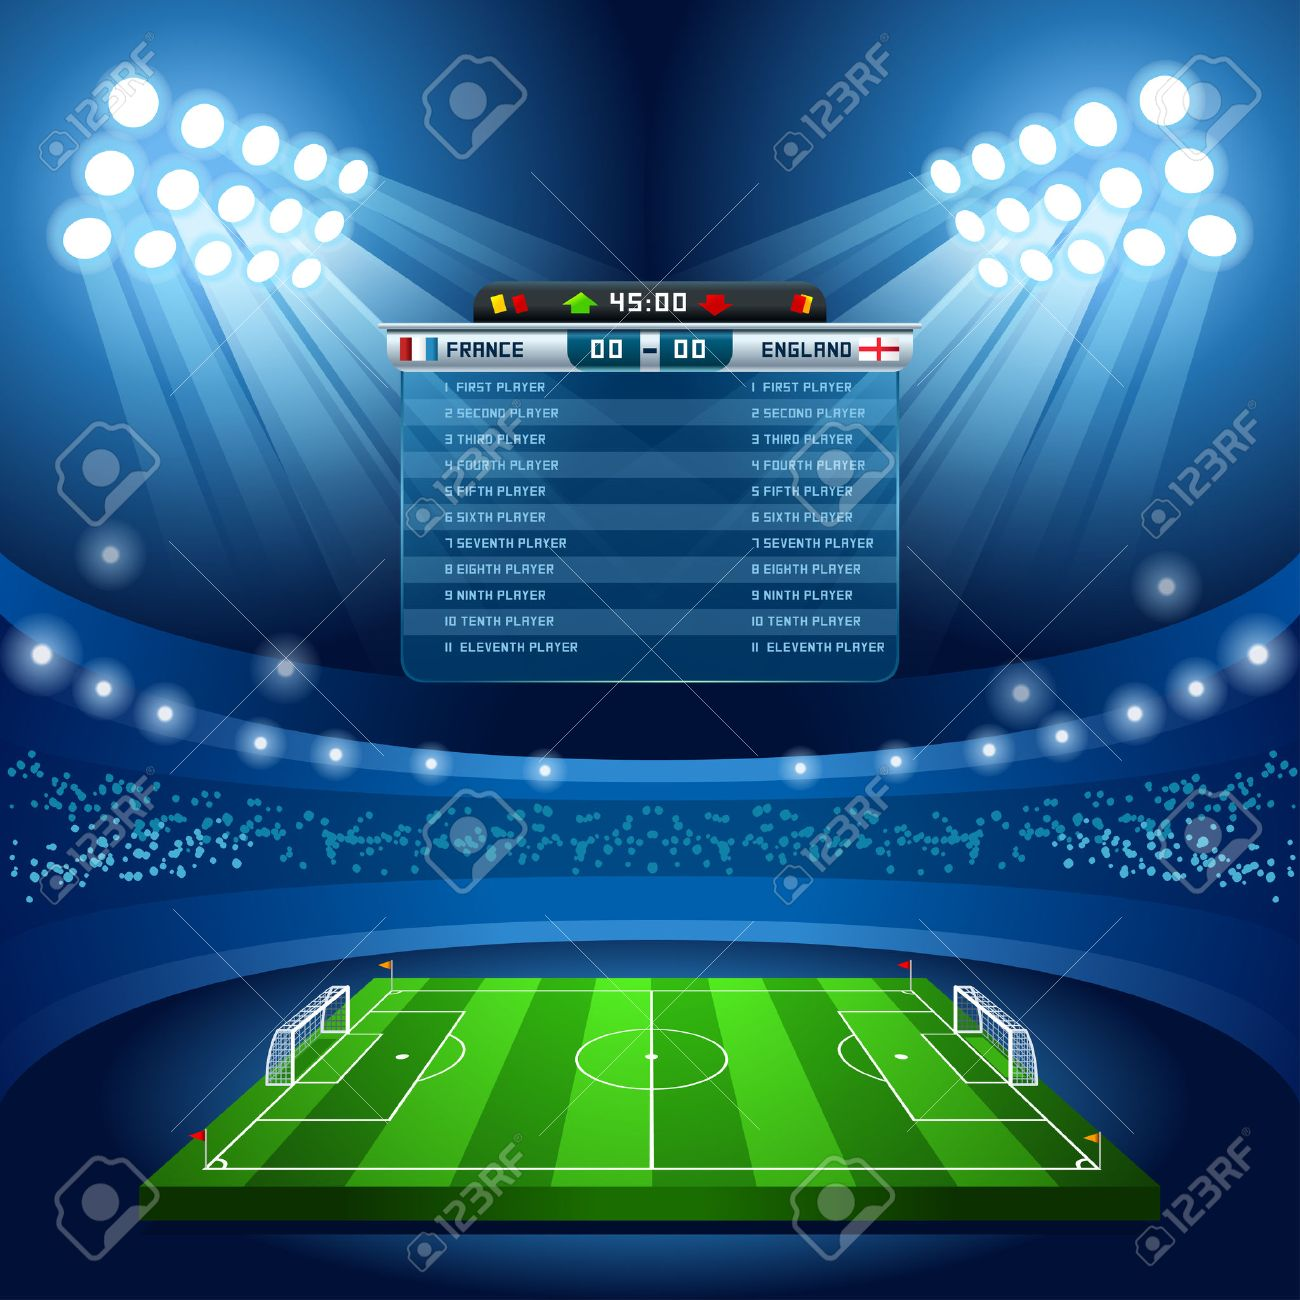 football stadium empty field background nocturnal view royalty free cliparts vectors and stock illustration image 47073243 football stadium empty field background nocturnal view